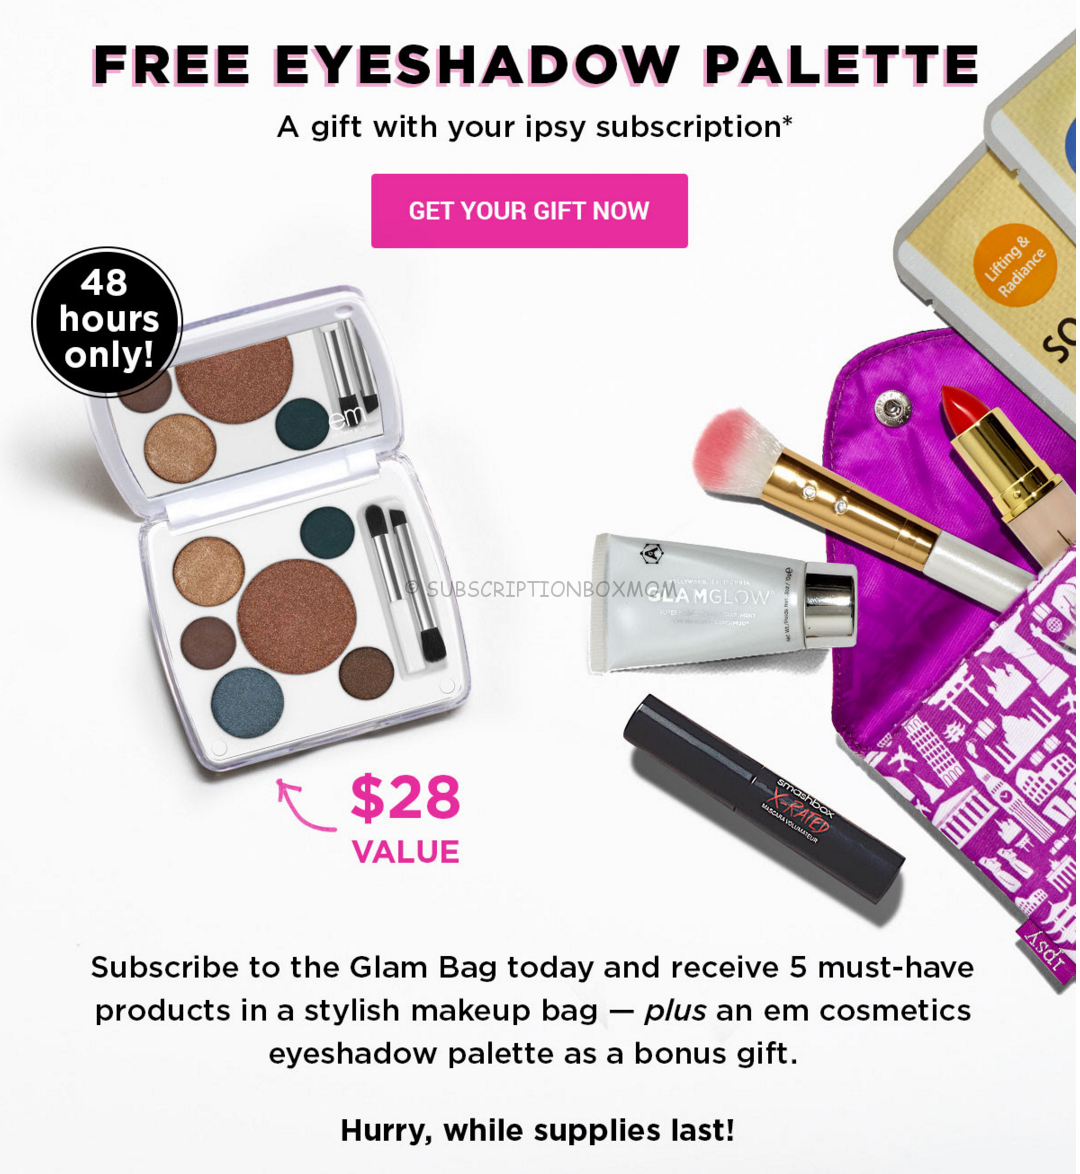 New Ipsy Coupon - Free Em Eyeshadow Palette 48 hrs Only